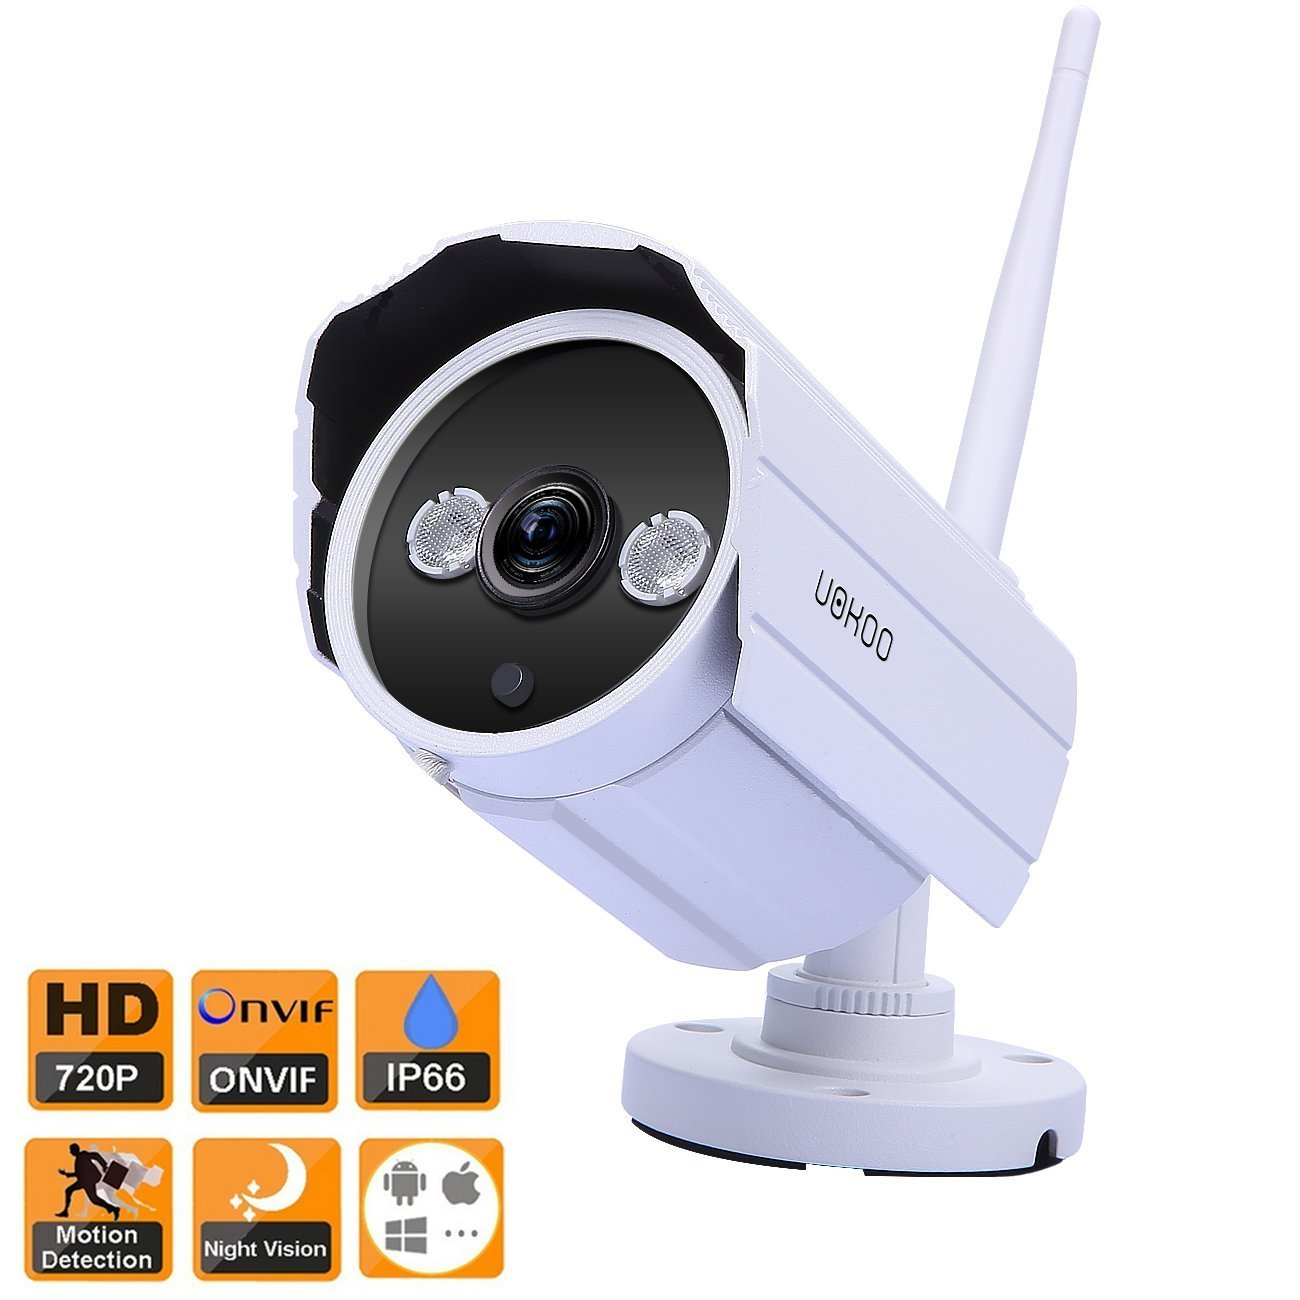 UOKOO Wireless IP Security Bullet Camera, 720P HD Waterproof Surveillance Network Camera with Night Vision and Motion Detection Email Alert Remote View for Phone/Pad/PC